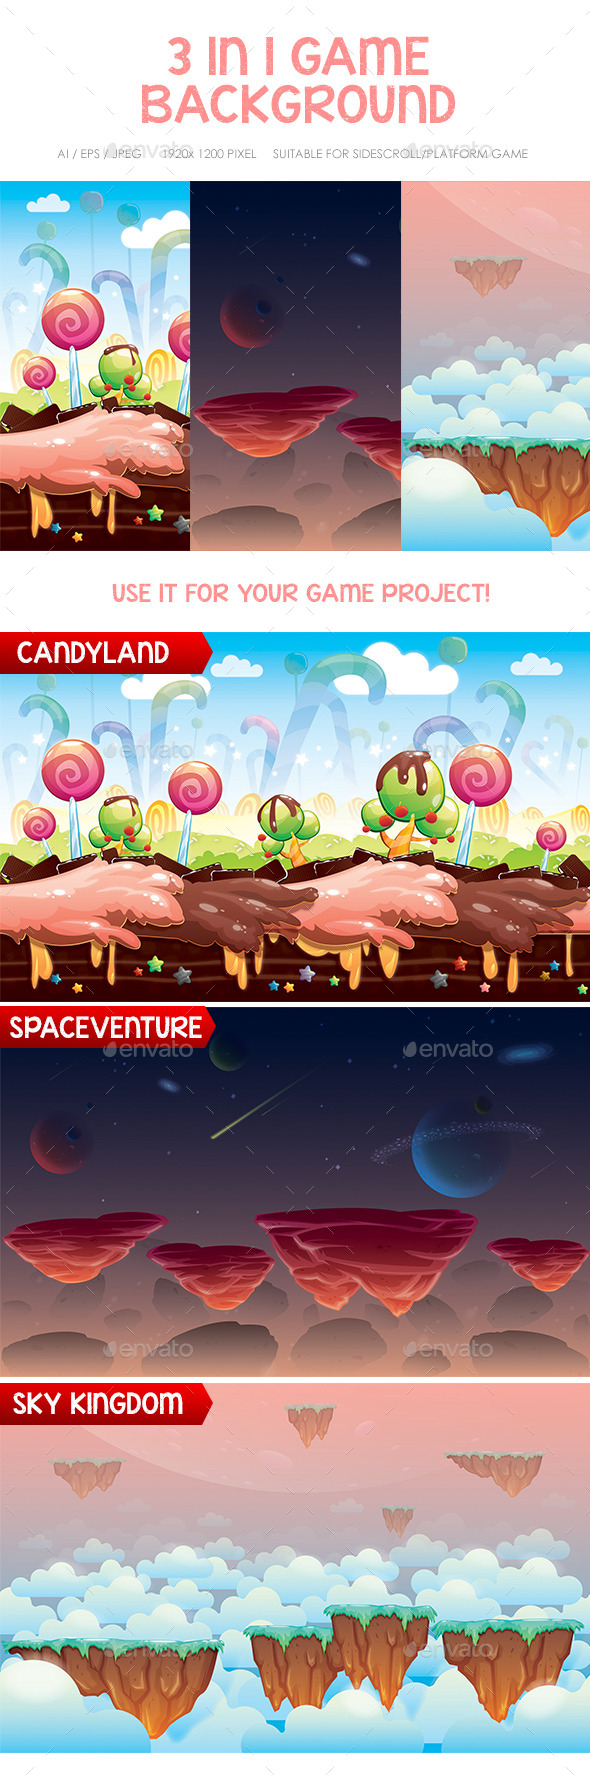 Space, Candy & Sky Game Background - Backgrounds Game Assets